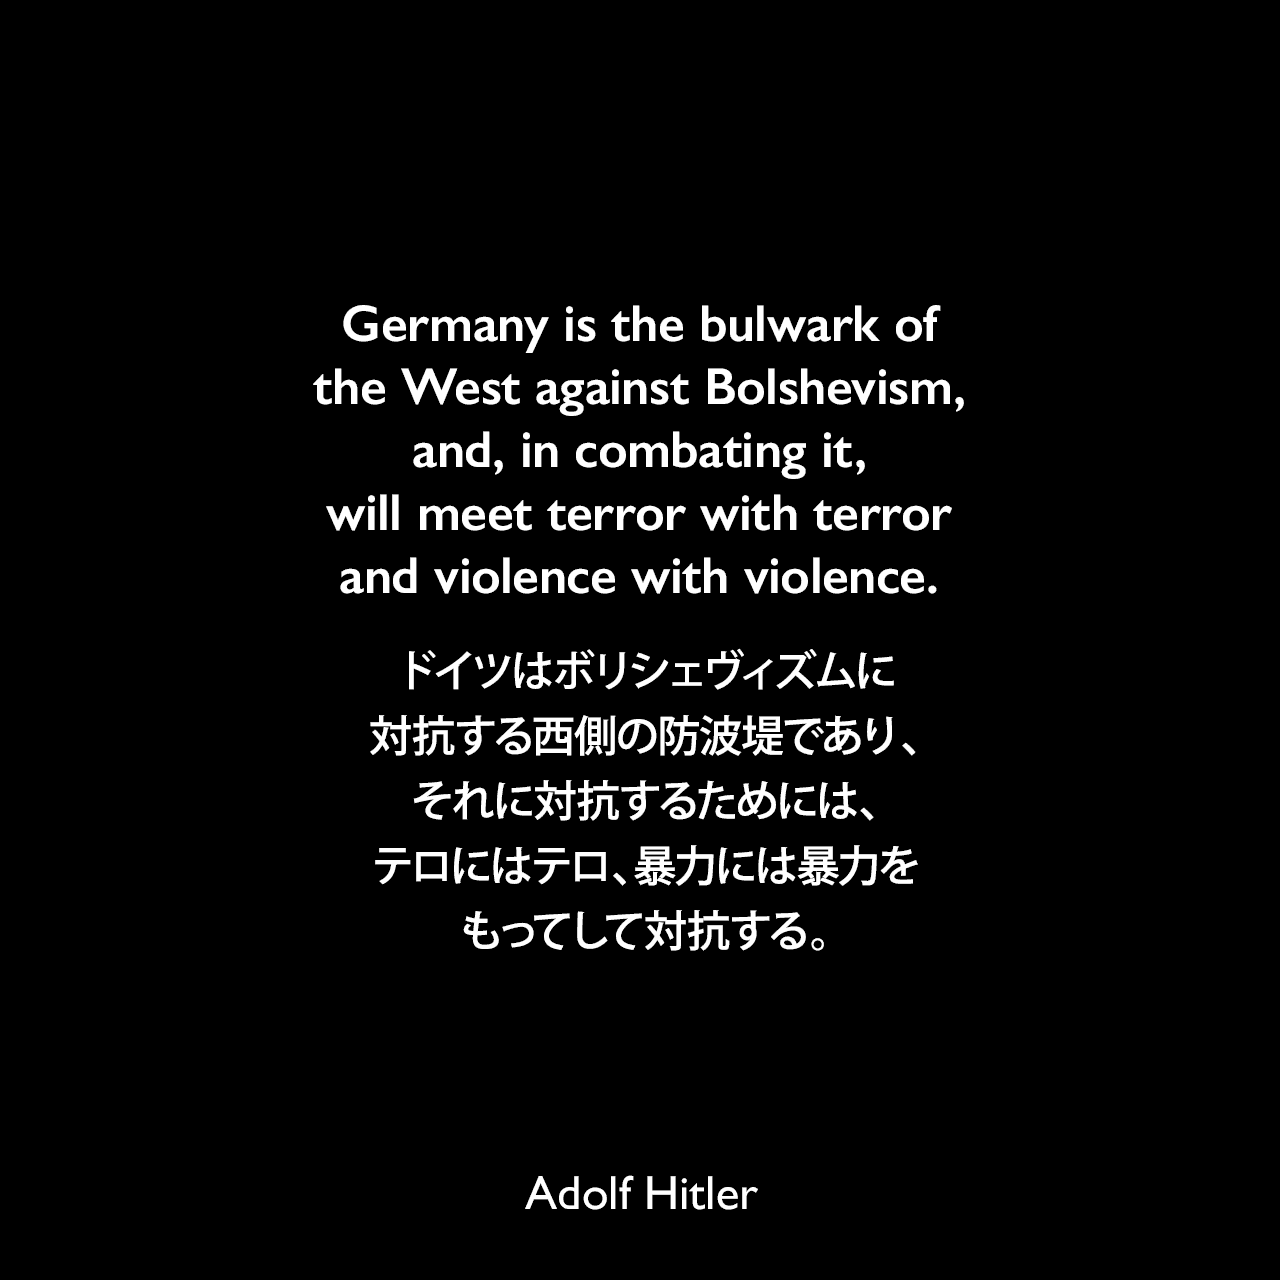 Germany is the bulwark of the West against Bolshevism, and, in combating it, will meet terror with terror and violence with violence.ドイツはボリシェヴィズムに対抗する西側の防波堤であり、それに対抗するためには、テロにはテロ、暴力には暴力をもってして対抗する。- 1935年11月29日ベルリンでの演説より(1939年9月26日タイムズ紙より引用)Adolf Hitler